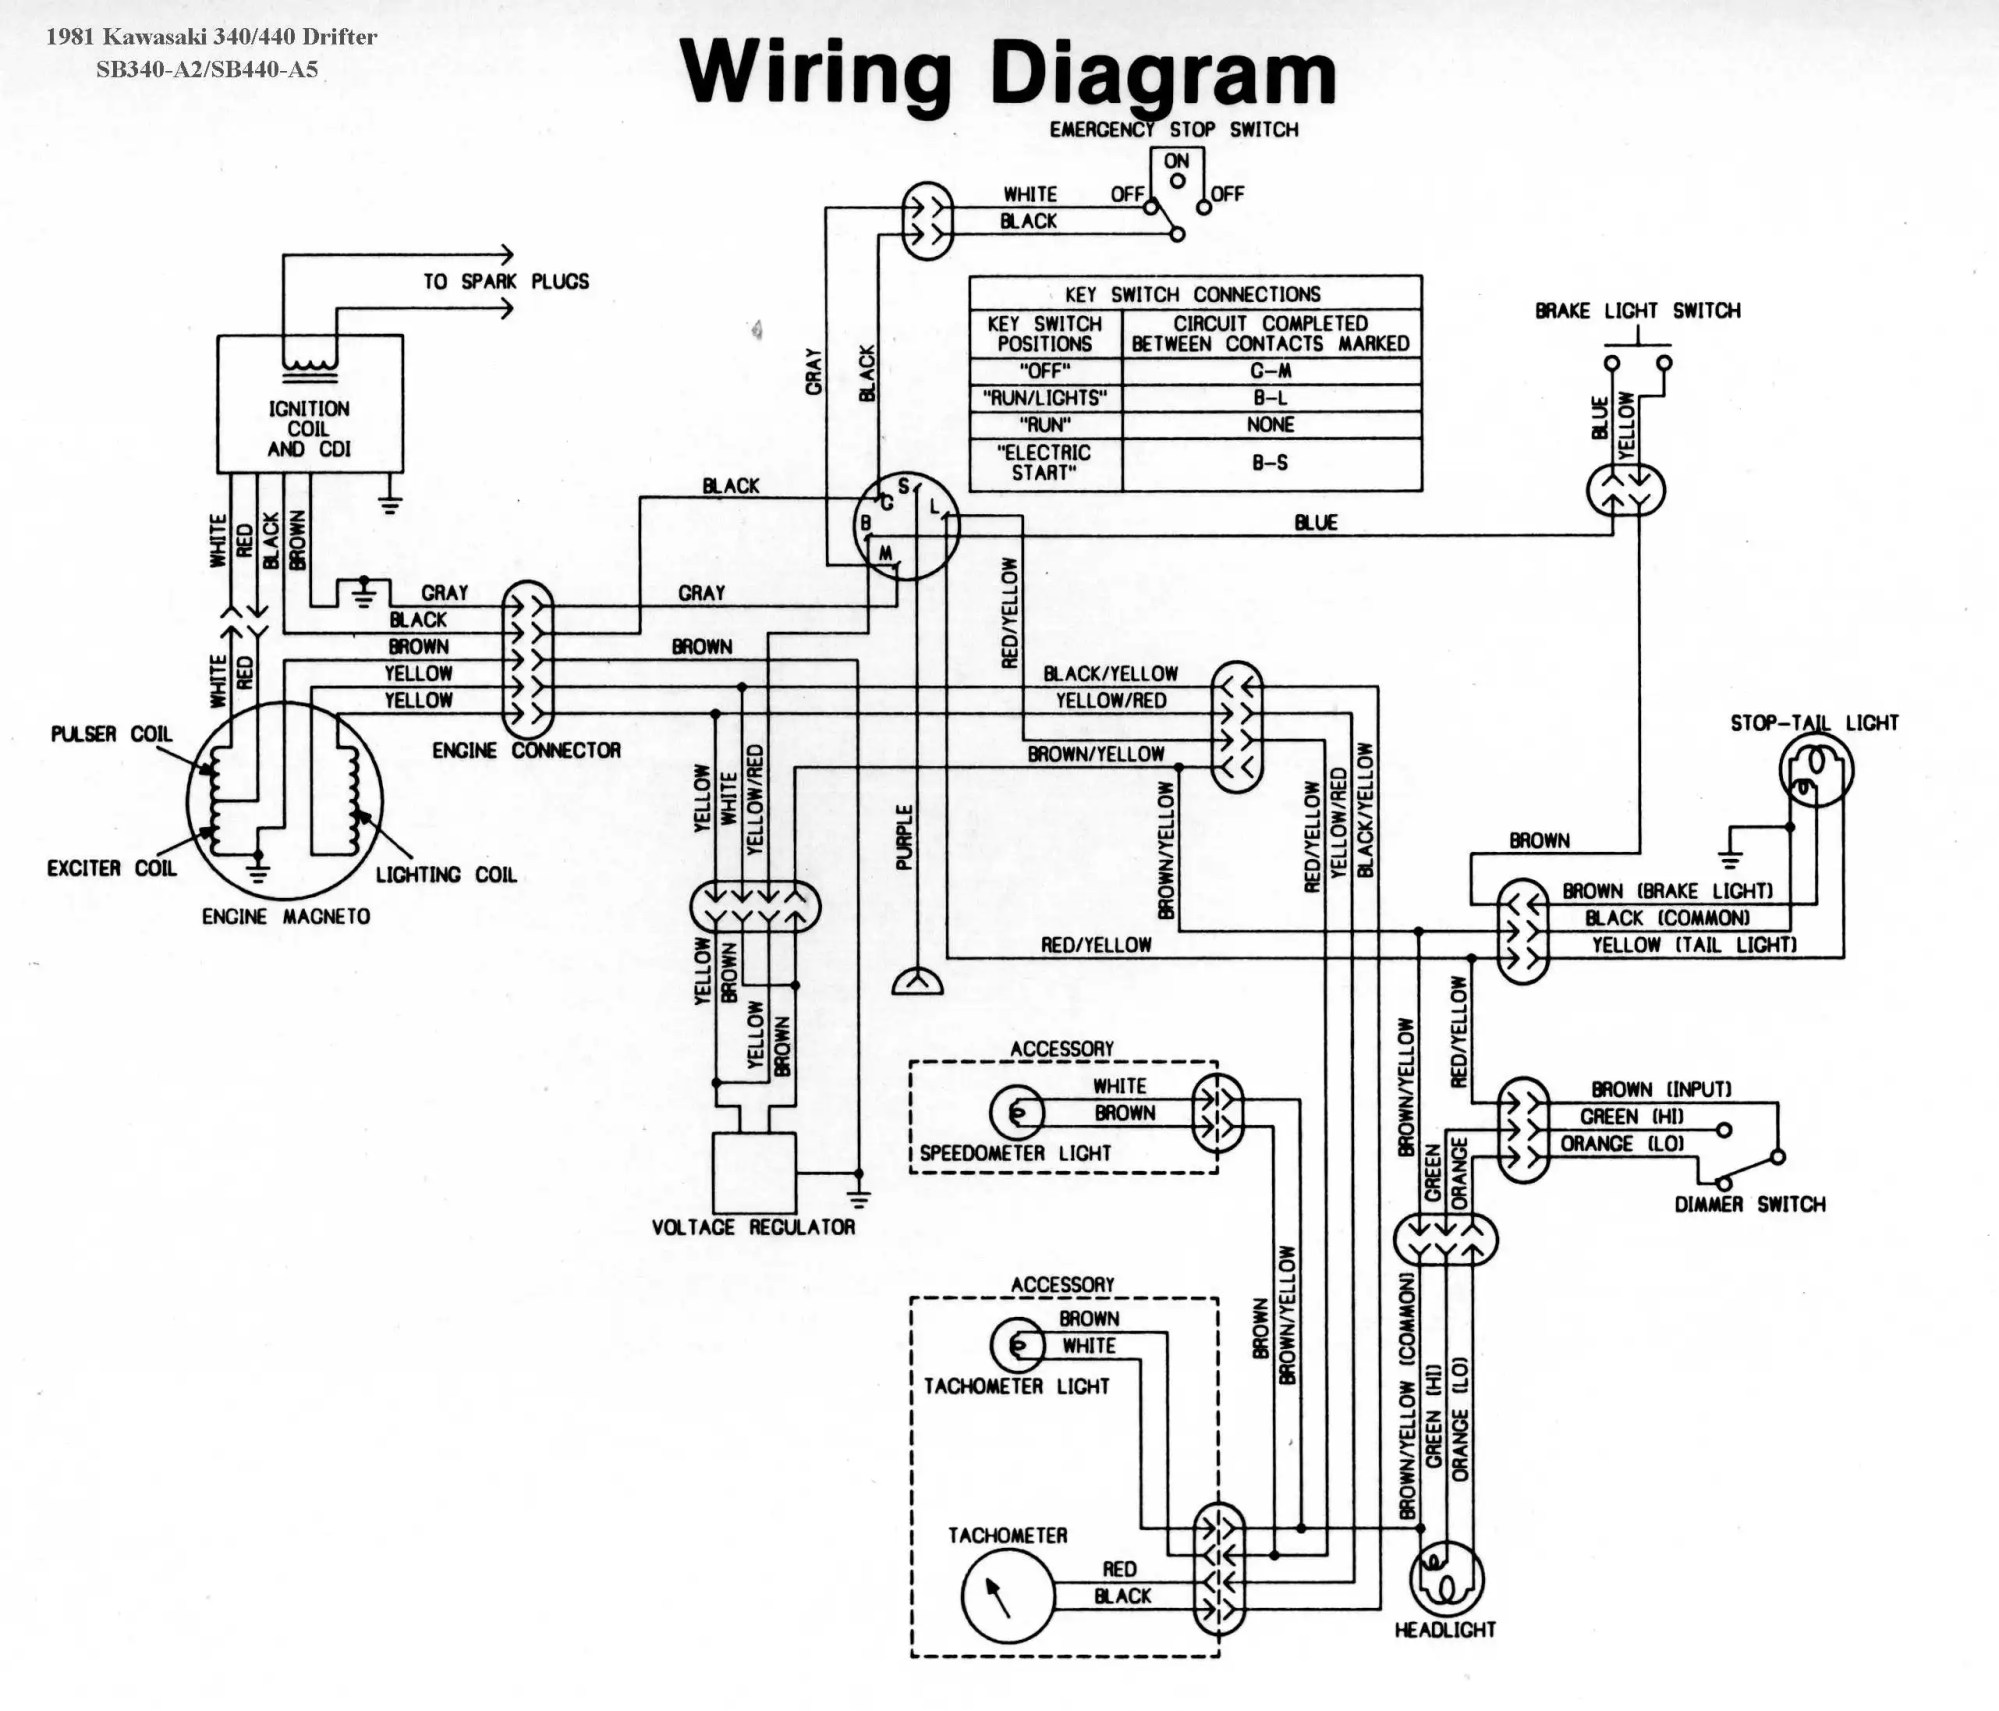 hight resolution of kawasaki mule 610 wiring schematic kawasaki get free kawasaki electrical diagrams kawasaki bayou 220 wiring schematic